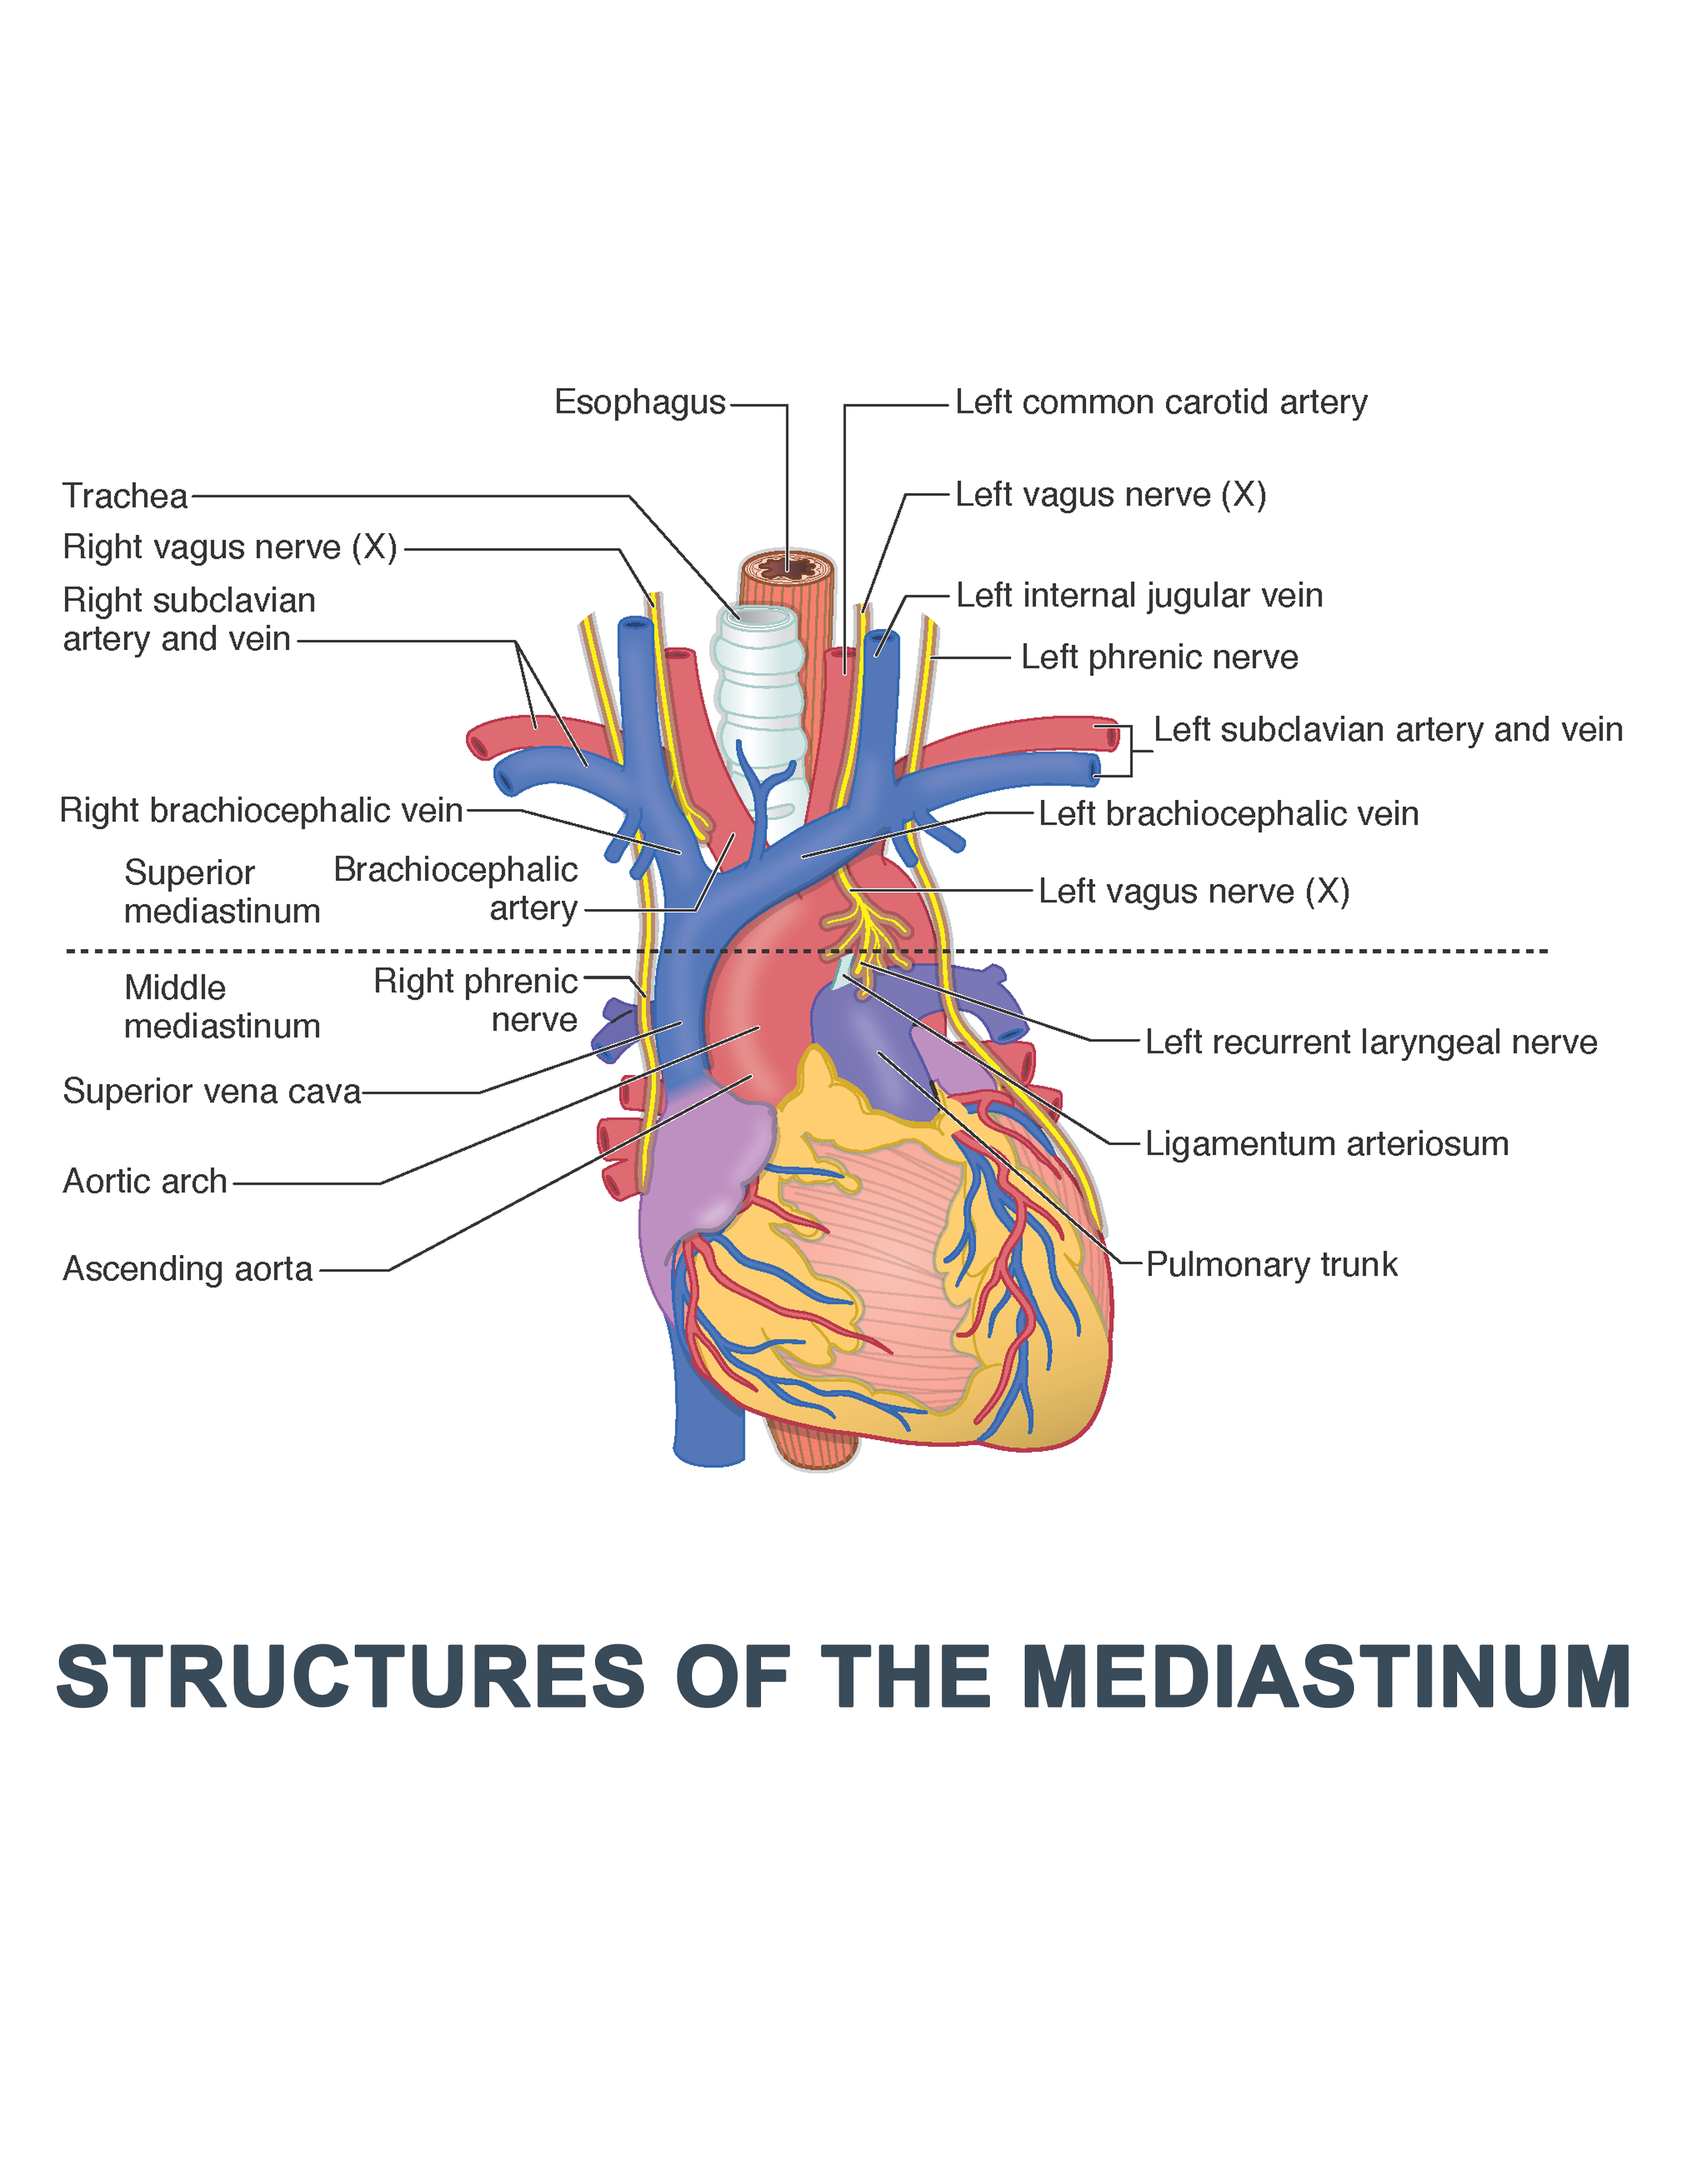 Structures Of The Mediastinum Anatomy Images Illustrations Anatomy Images Character Design Anatomy Images Ins Dental Anatomy Anatomy Inspirational Artwork